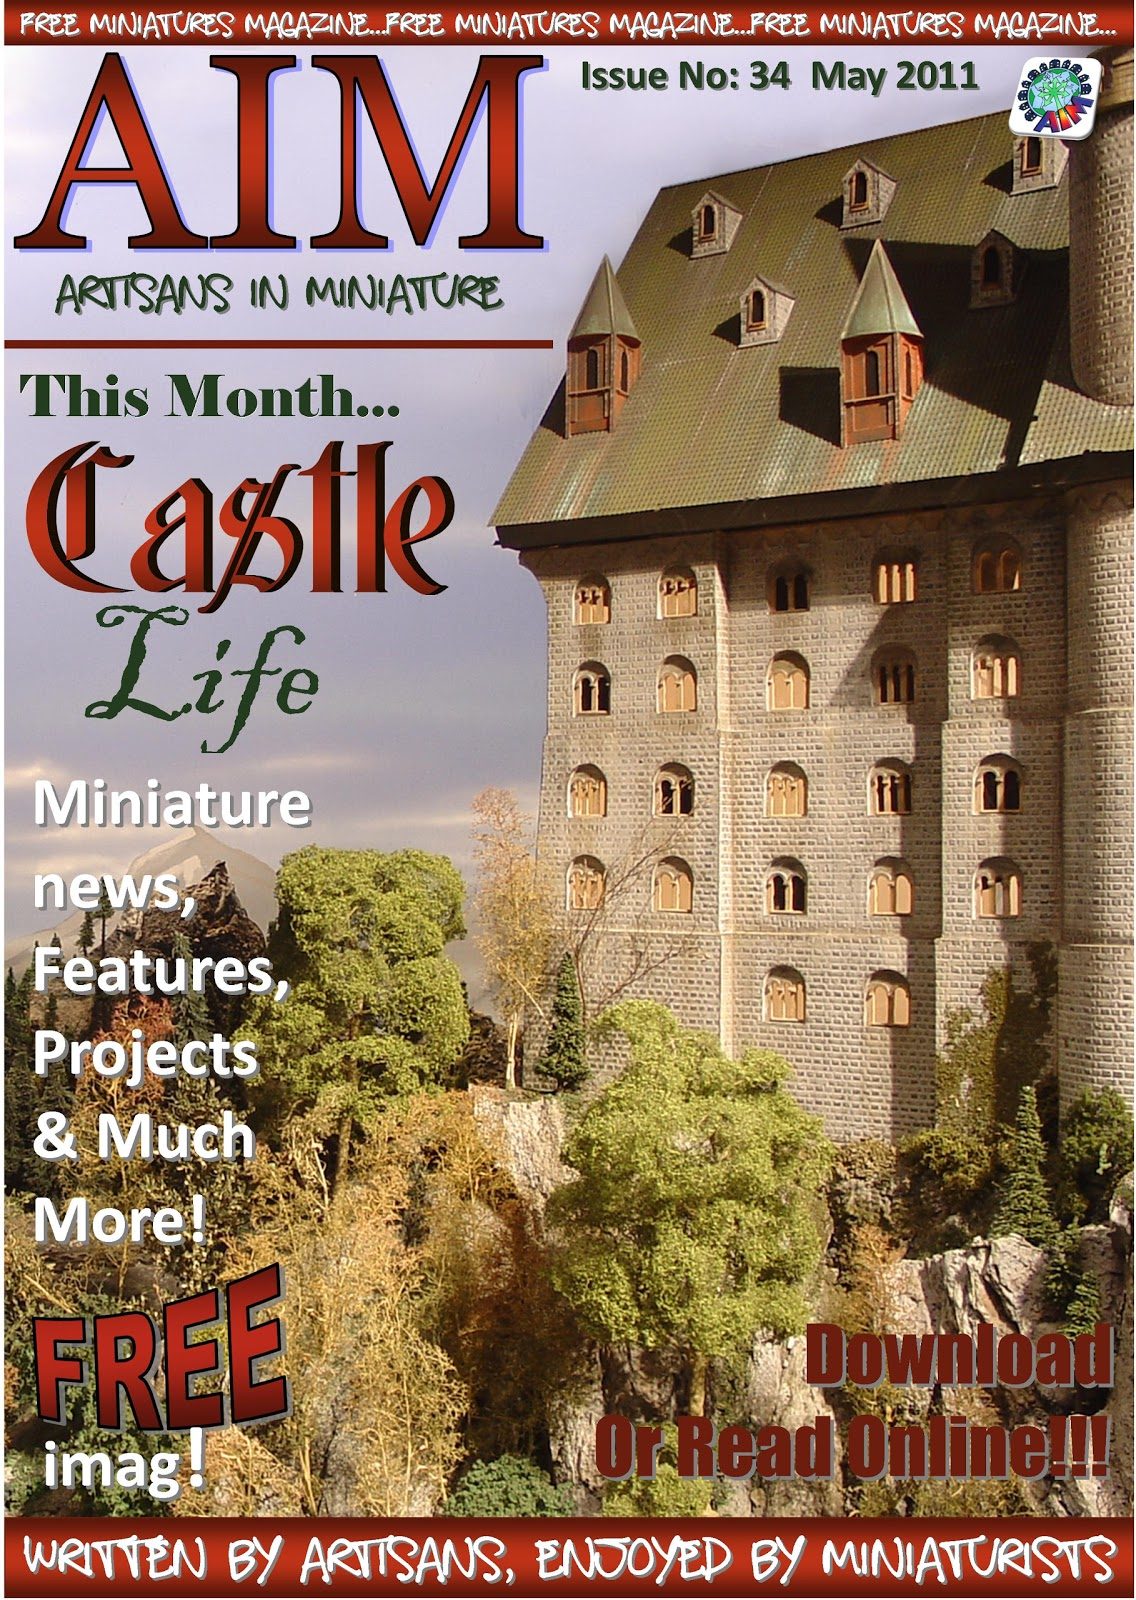 Petite Properties Ltd: AIM imag - FREE Online Dolls House Magazine!!